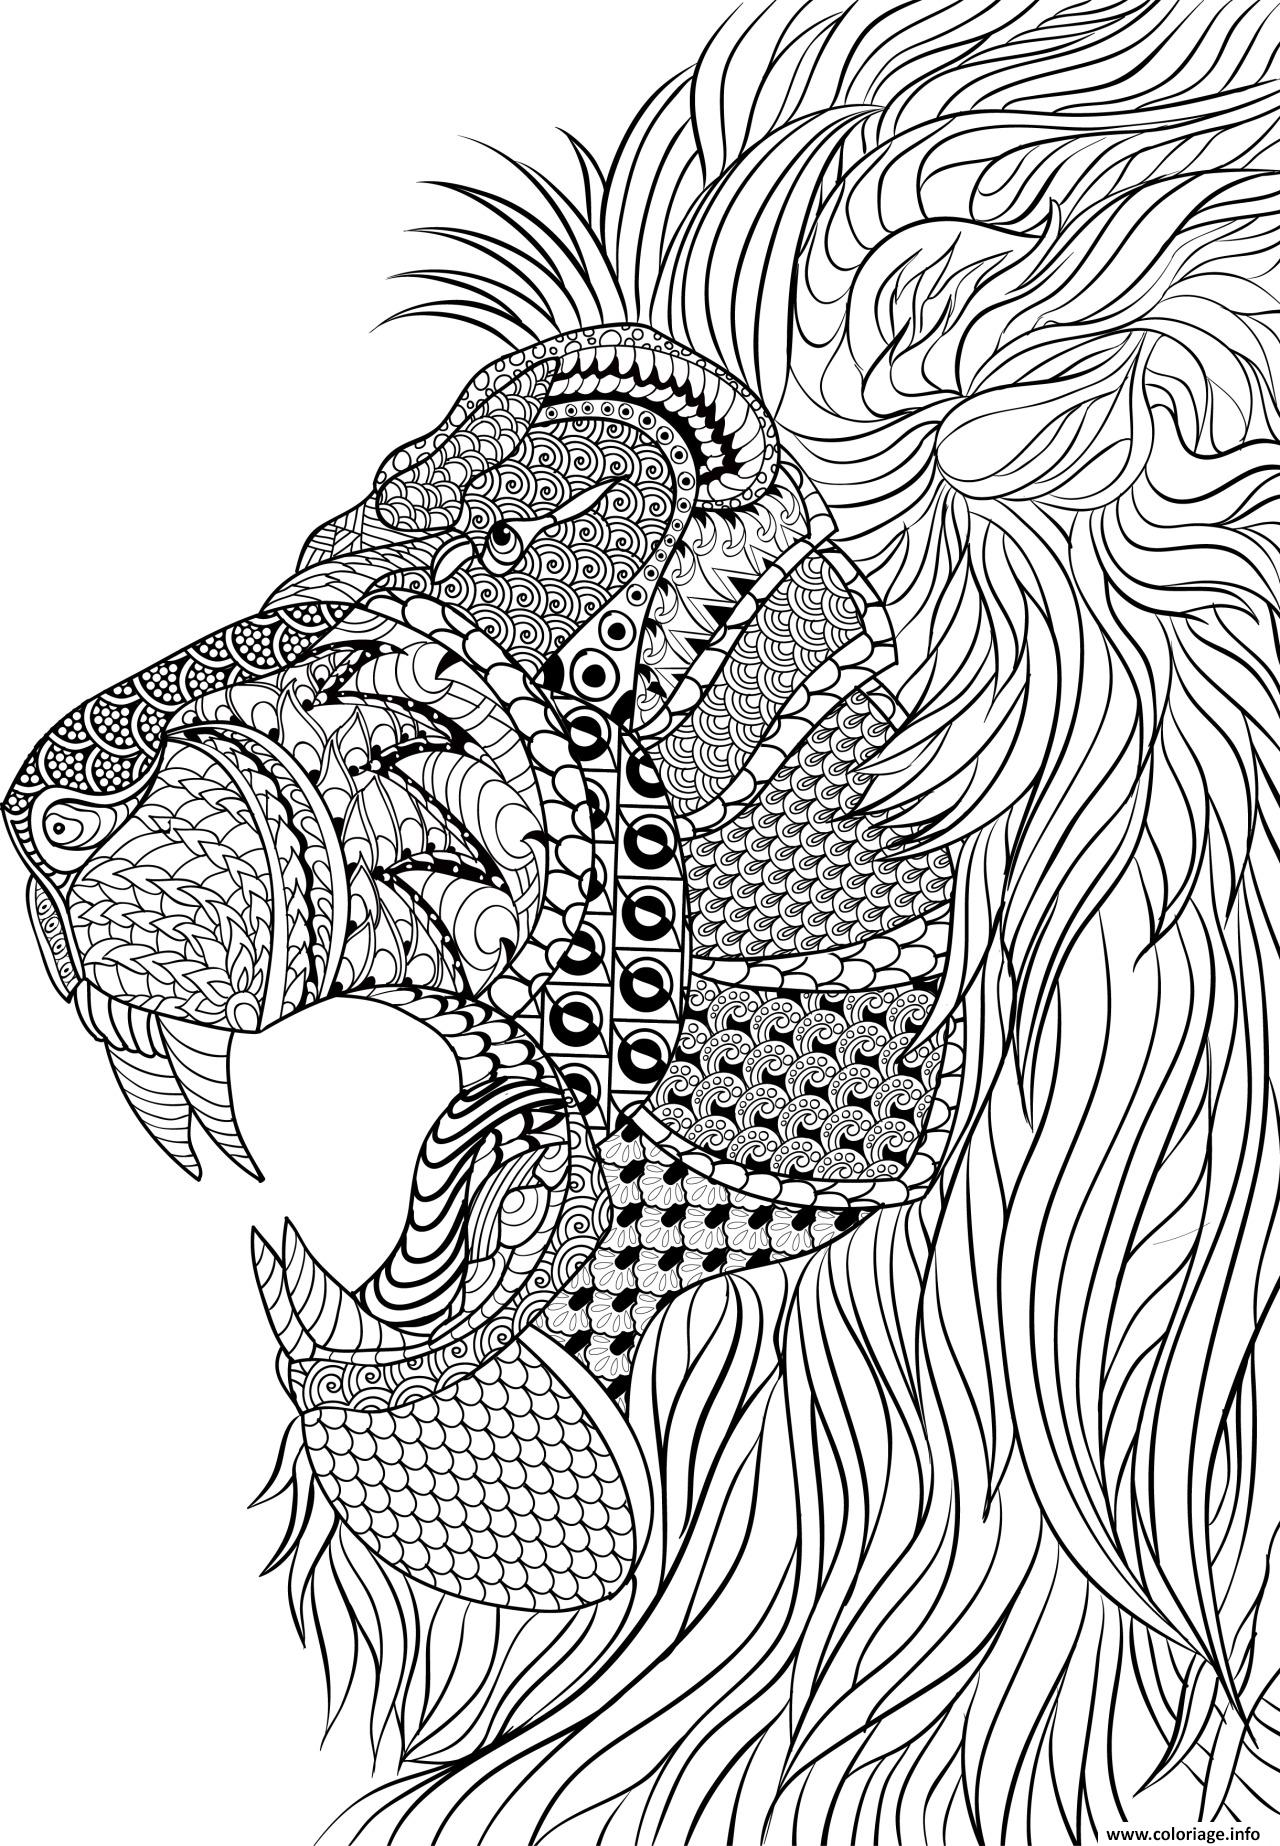 Coloriage lion adulte anti stress dessin - Dessins anti stress ...